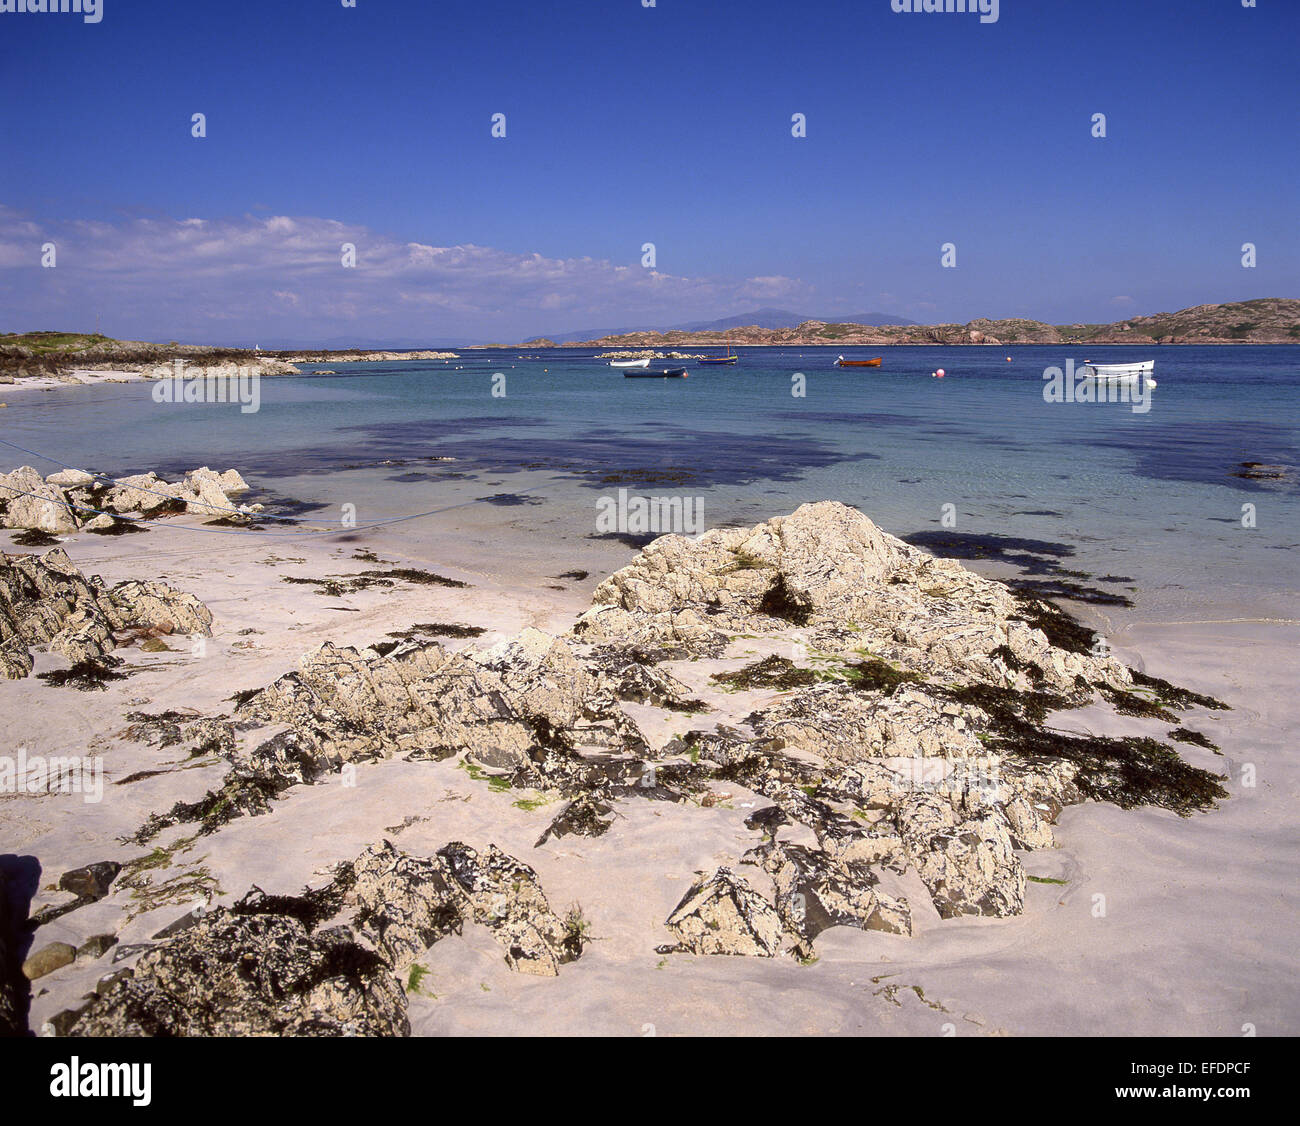 Beach view, Iona, The Inner Hebrides, The Hebrides, Scotland, United Kingdom - Stock Image